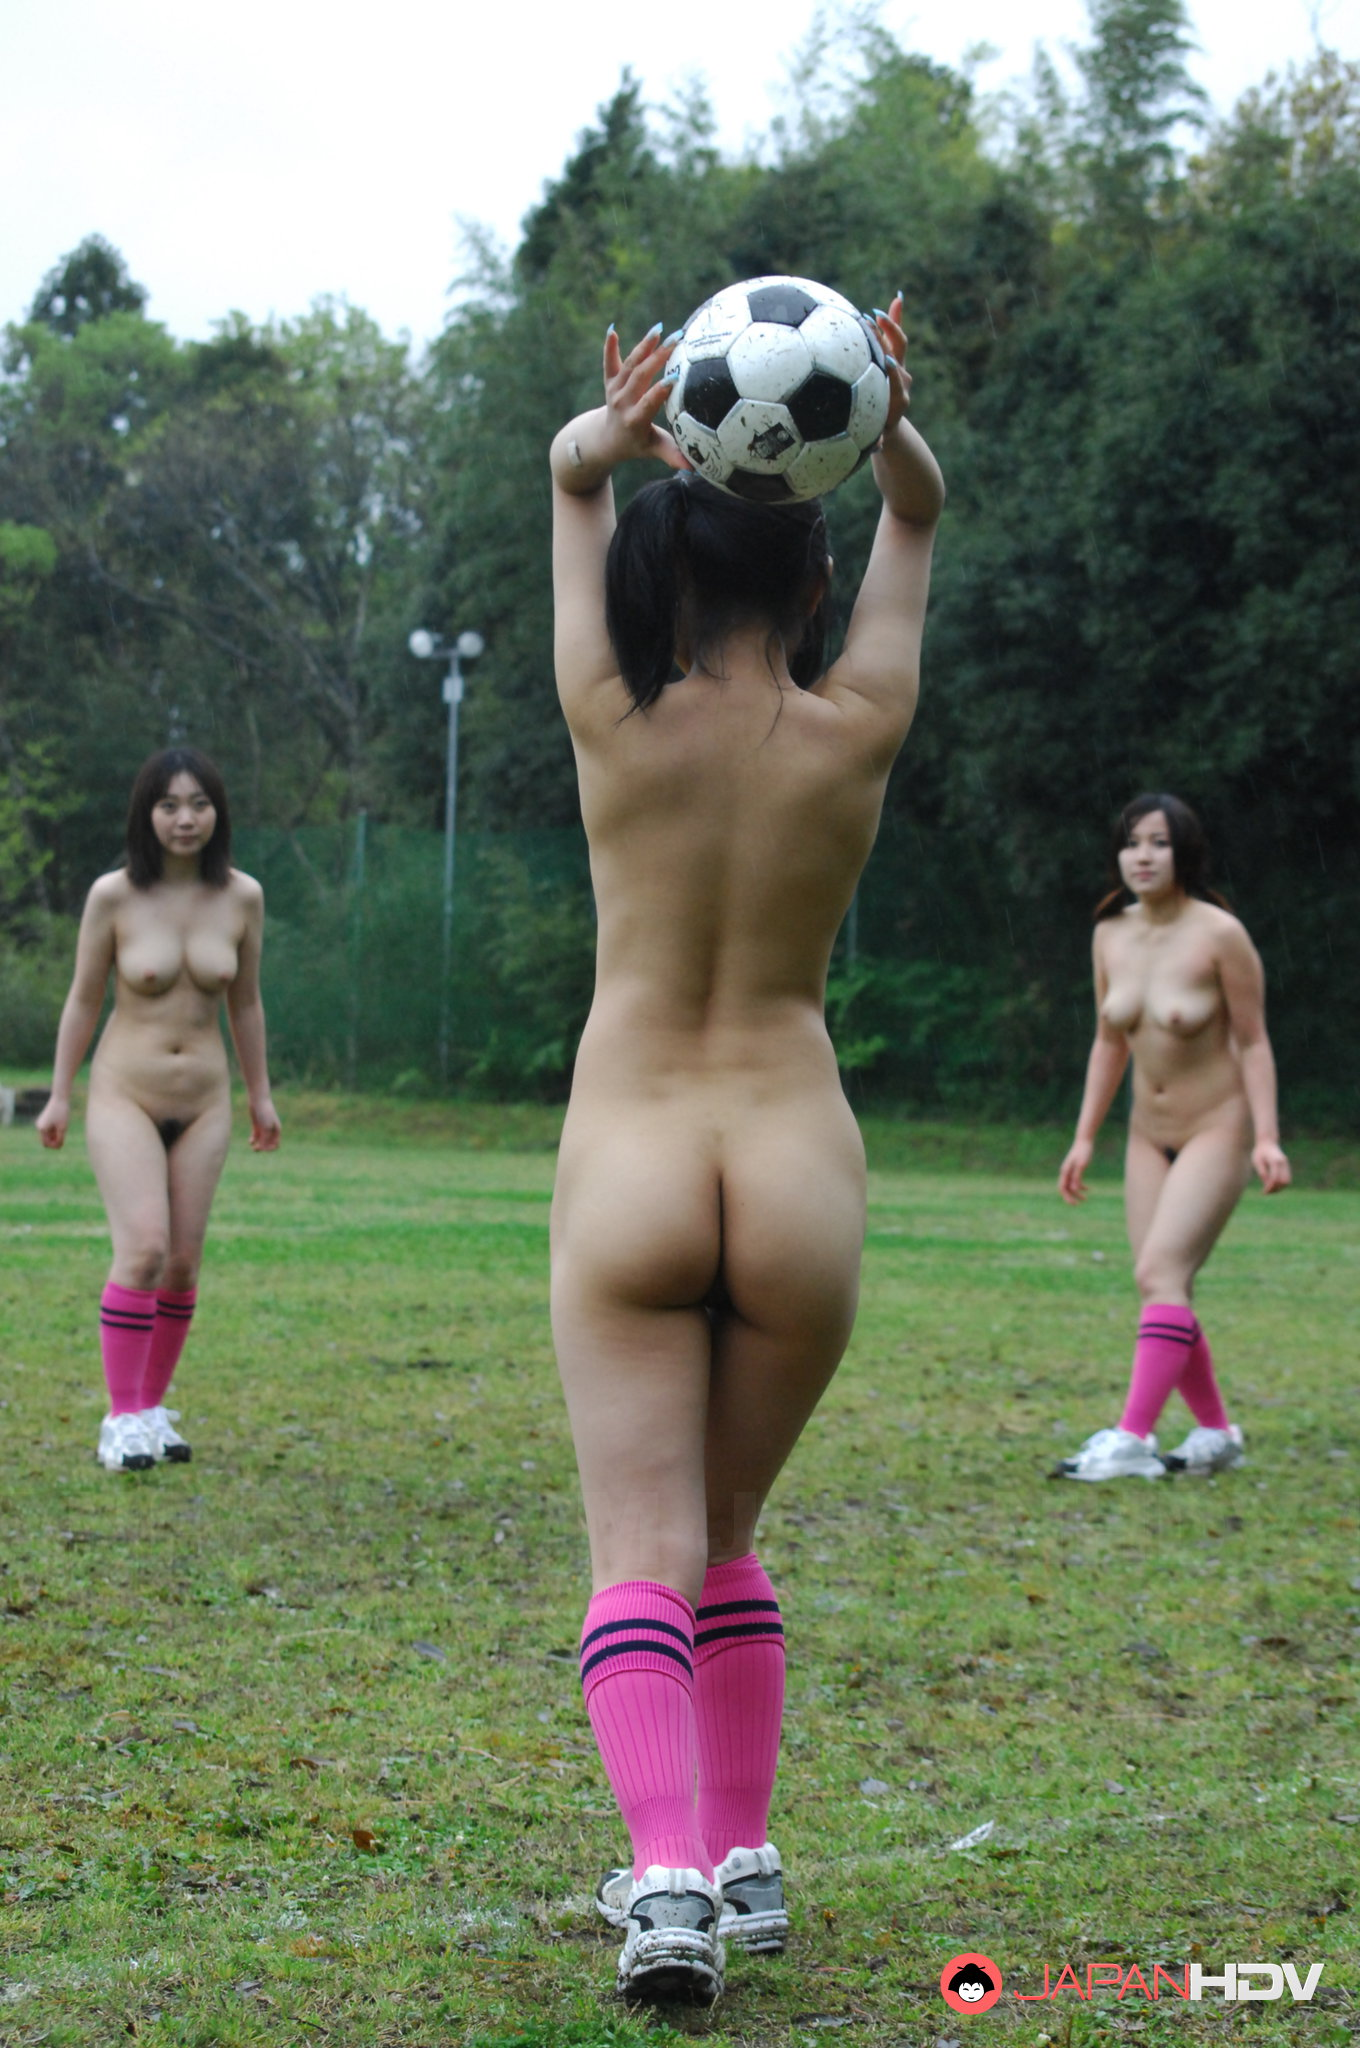 Apologise, but, football hot girls playing sexy naked congratulate